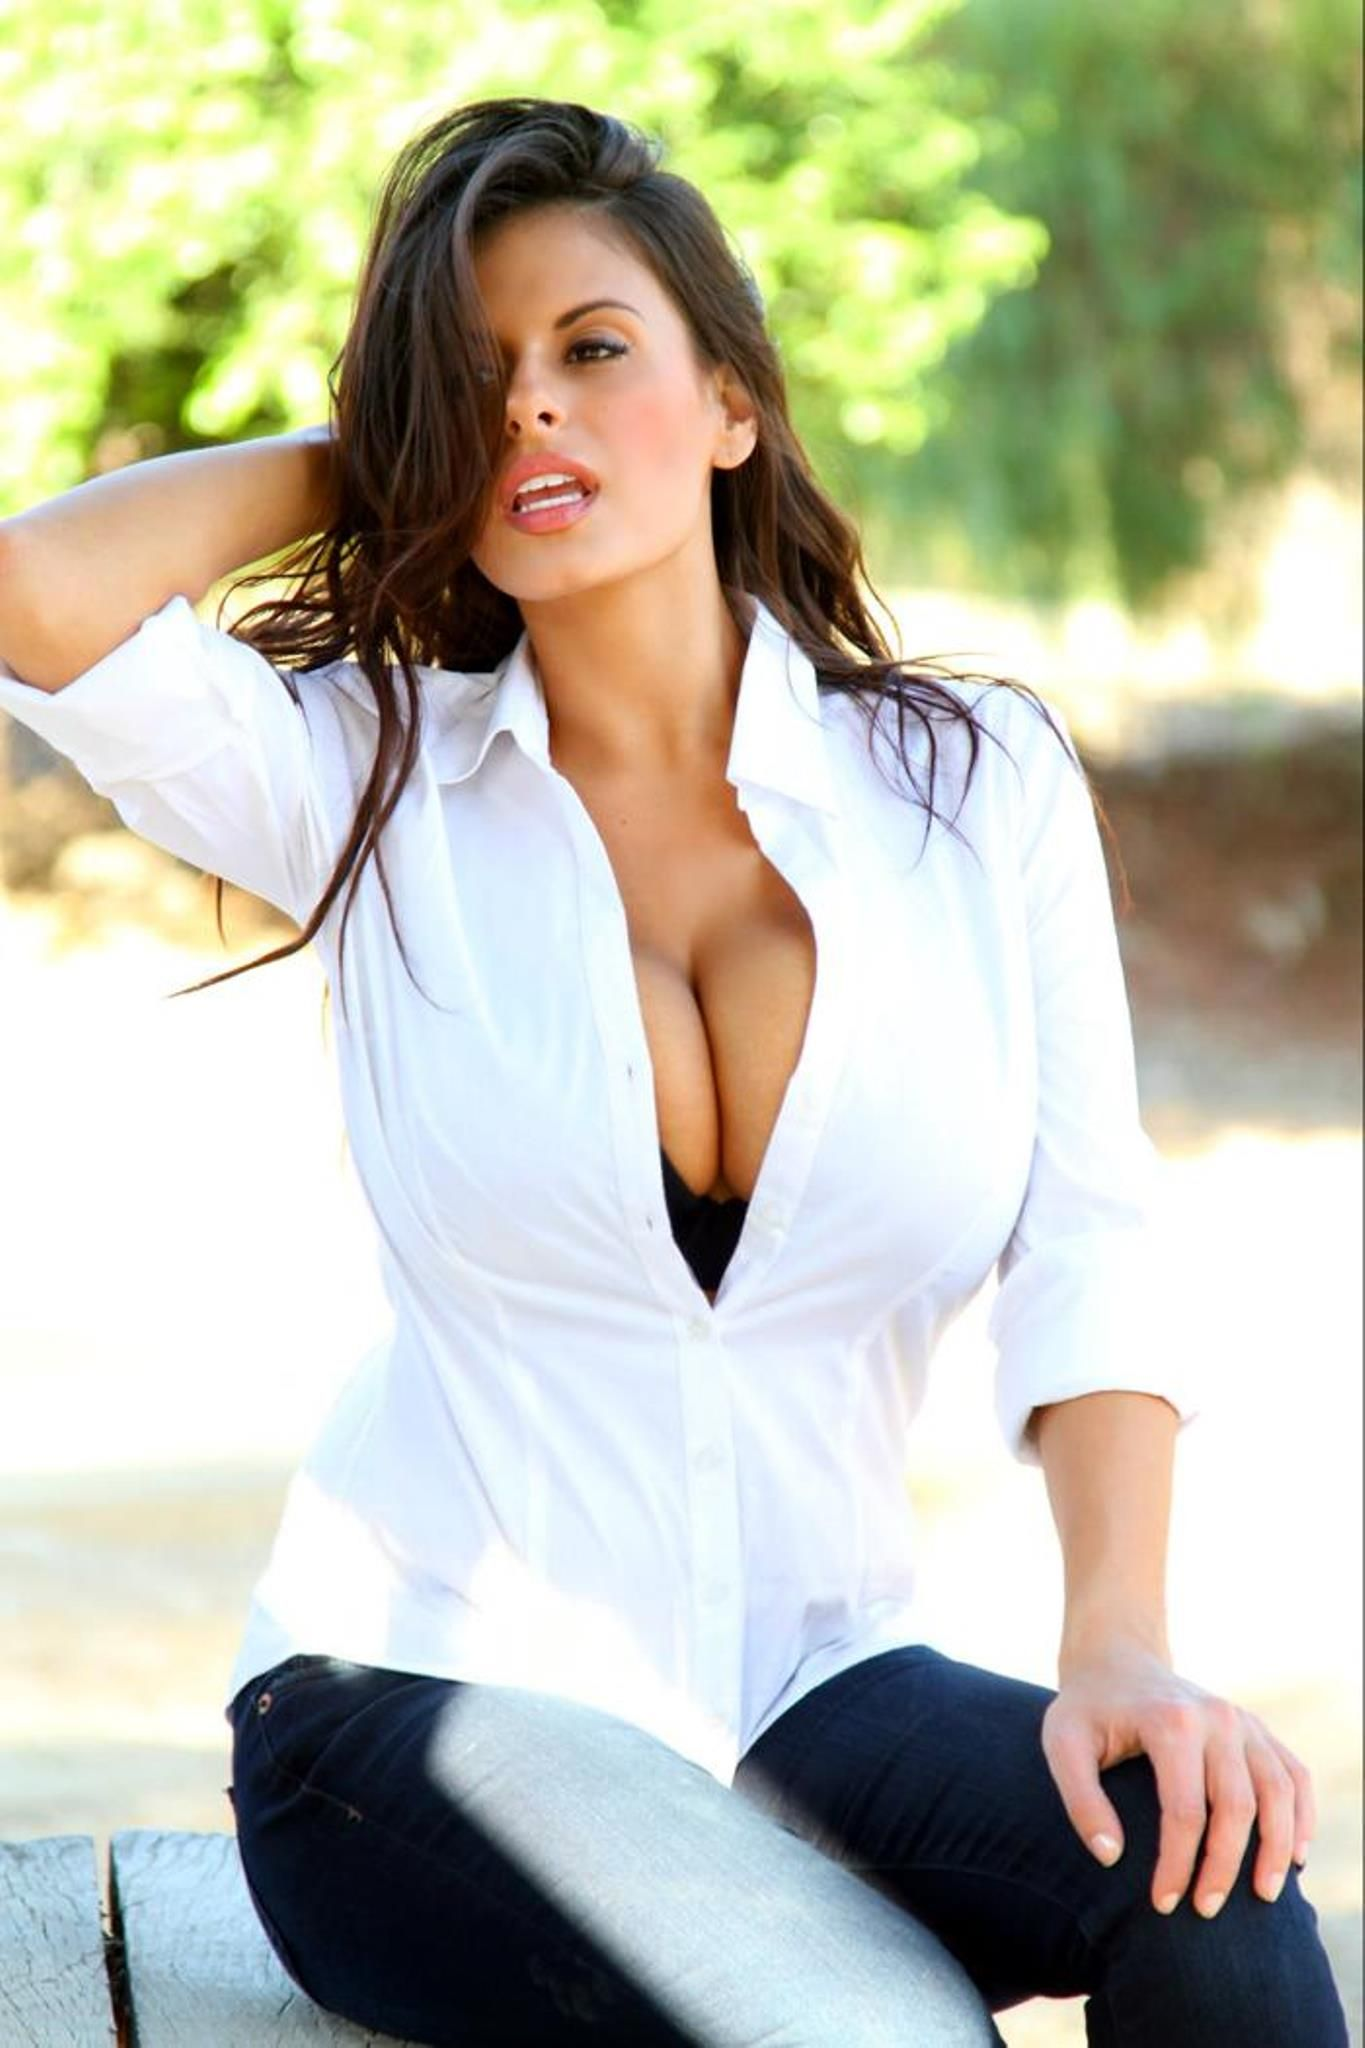 Wendy Fiore Nude Photos 34